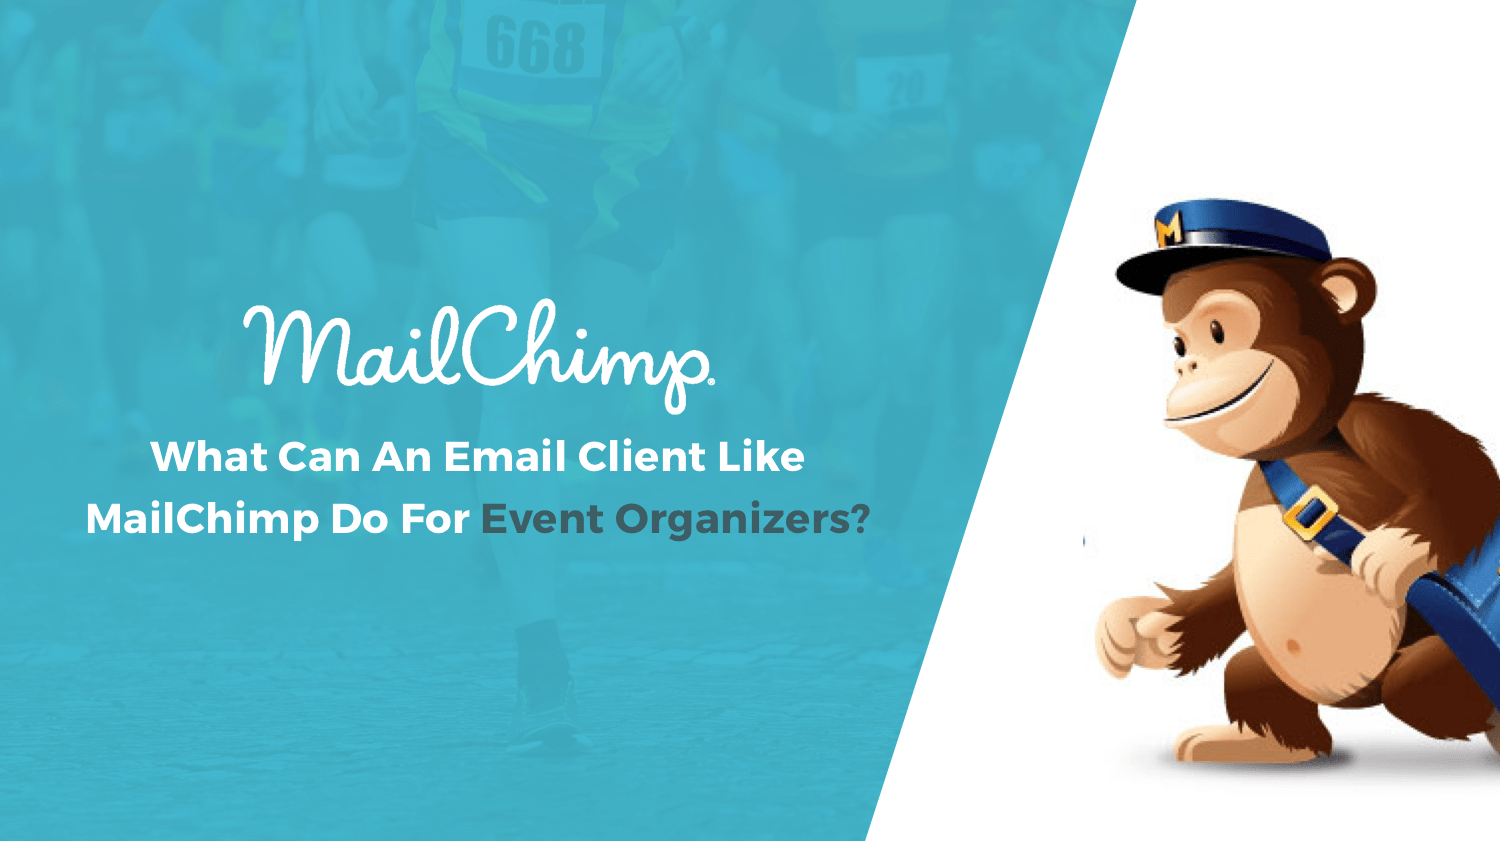 Mailchimp monkey and title